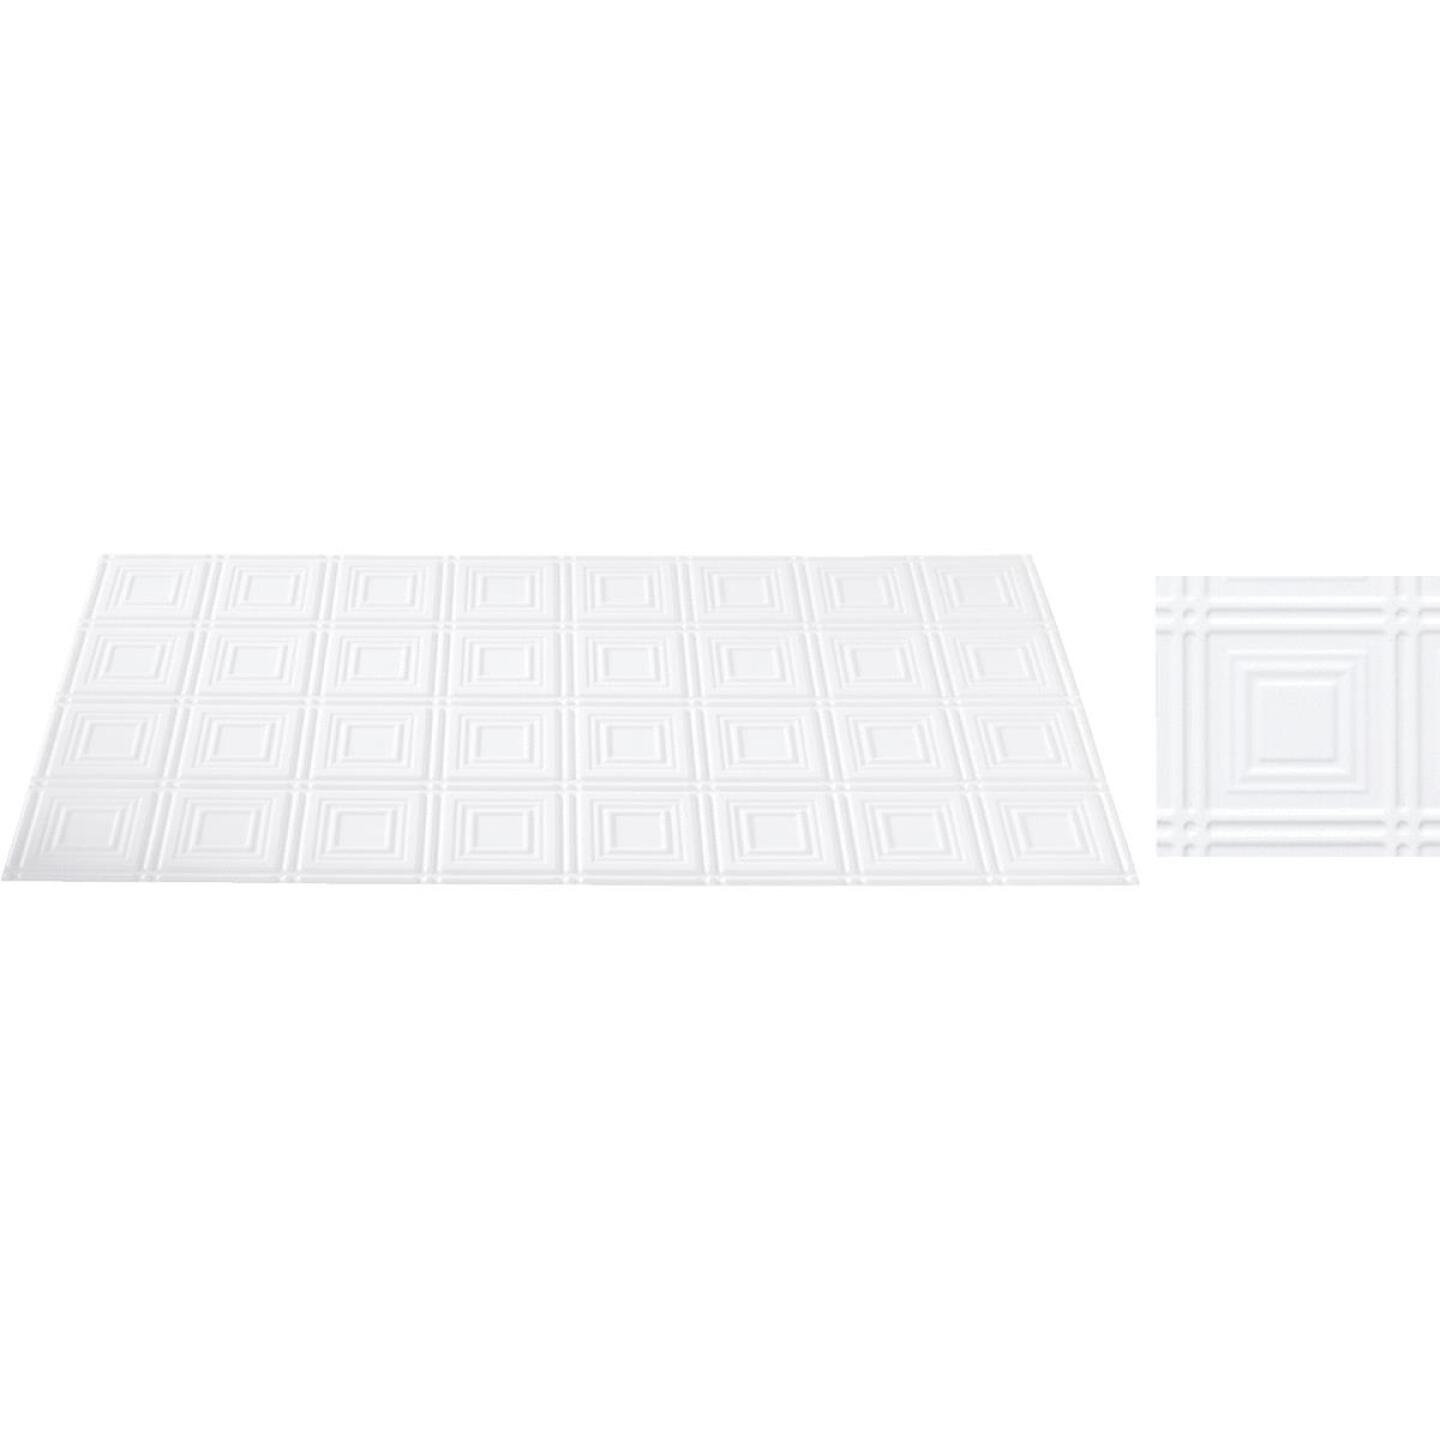 Dimensions 2 Ft. x 4 Ft. White 6 In. Square Pattern Tin Look Nonsuspended Ceiling Tile & Backsplash Image 1